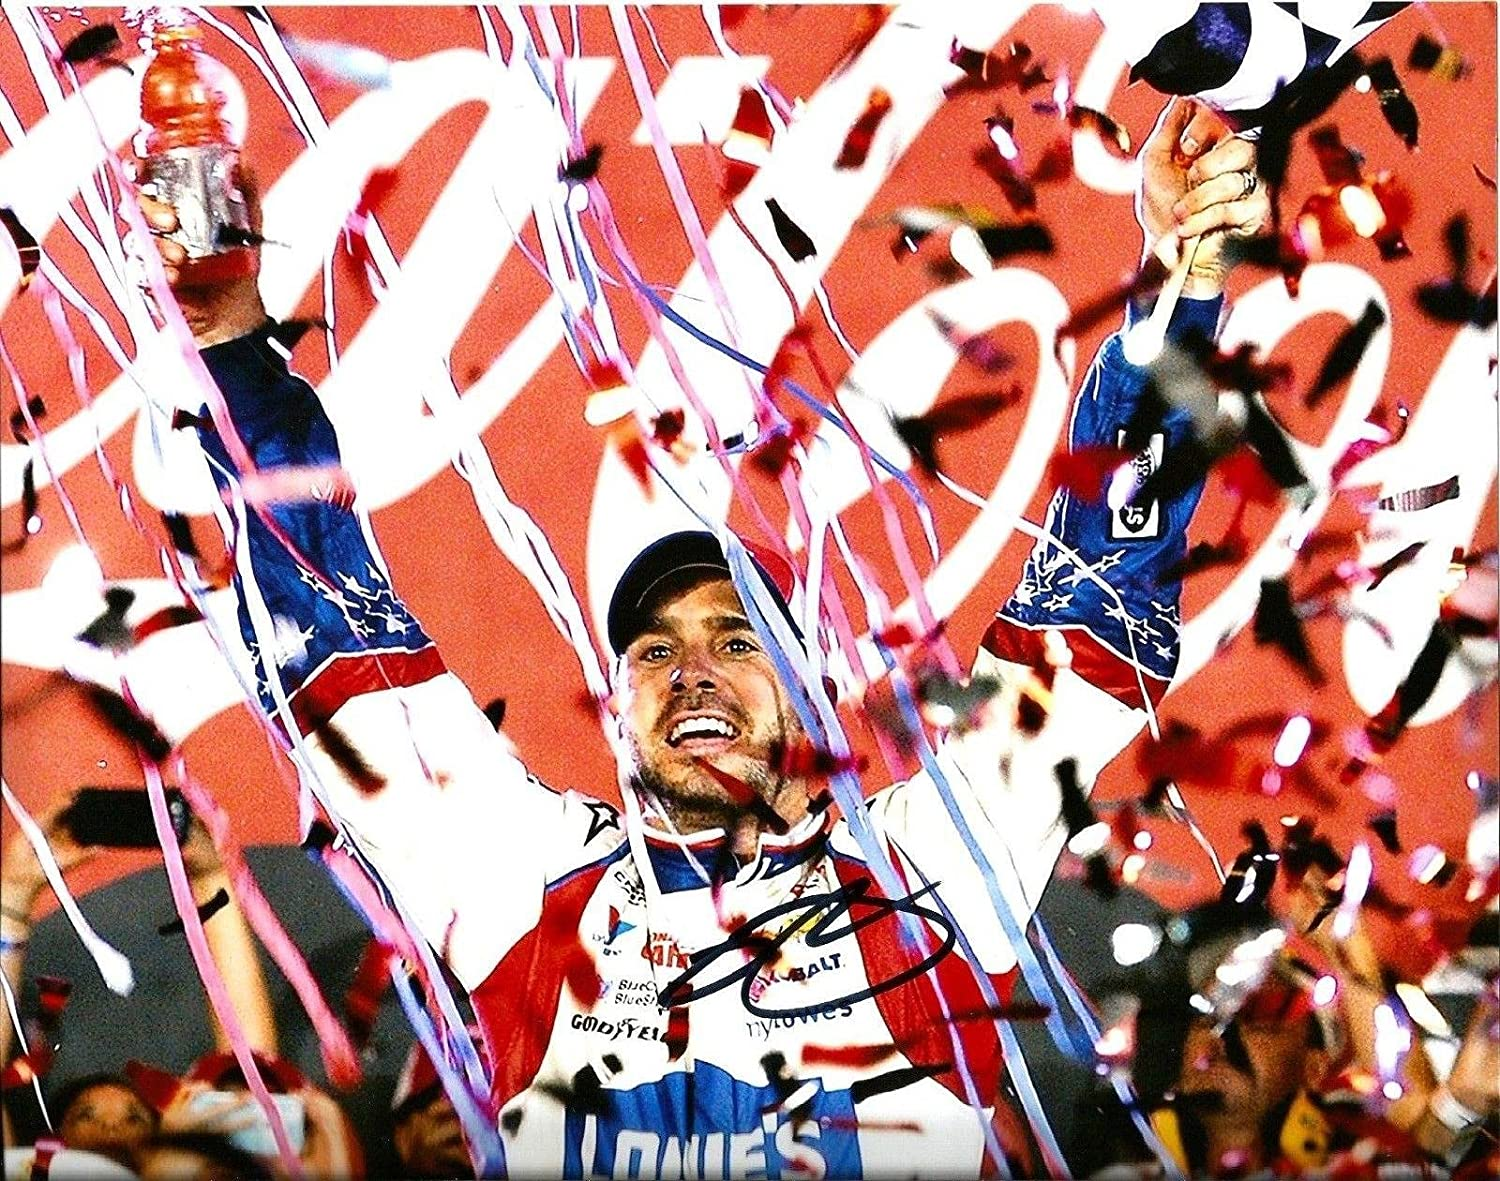 2014 Jimmie Johnson 6x TIME CHAMPION LOWES RACING NASCAR Signed 8x10 Photo #5 - Autographed NASCAR Photos